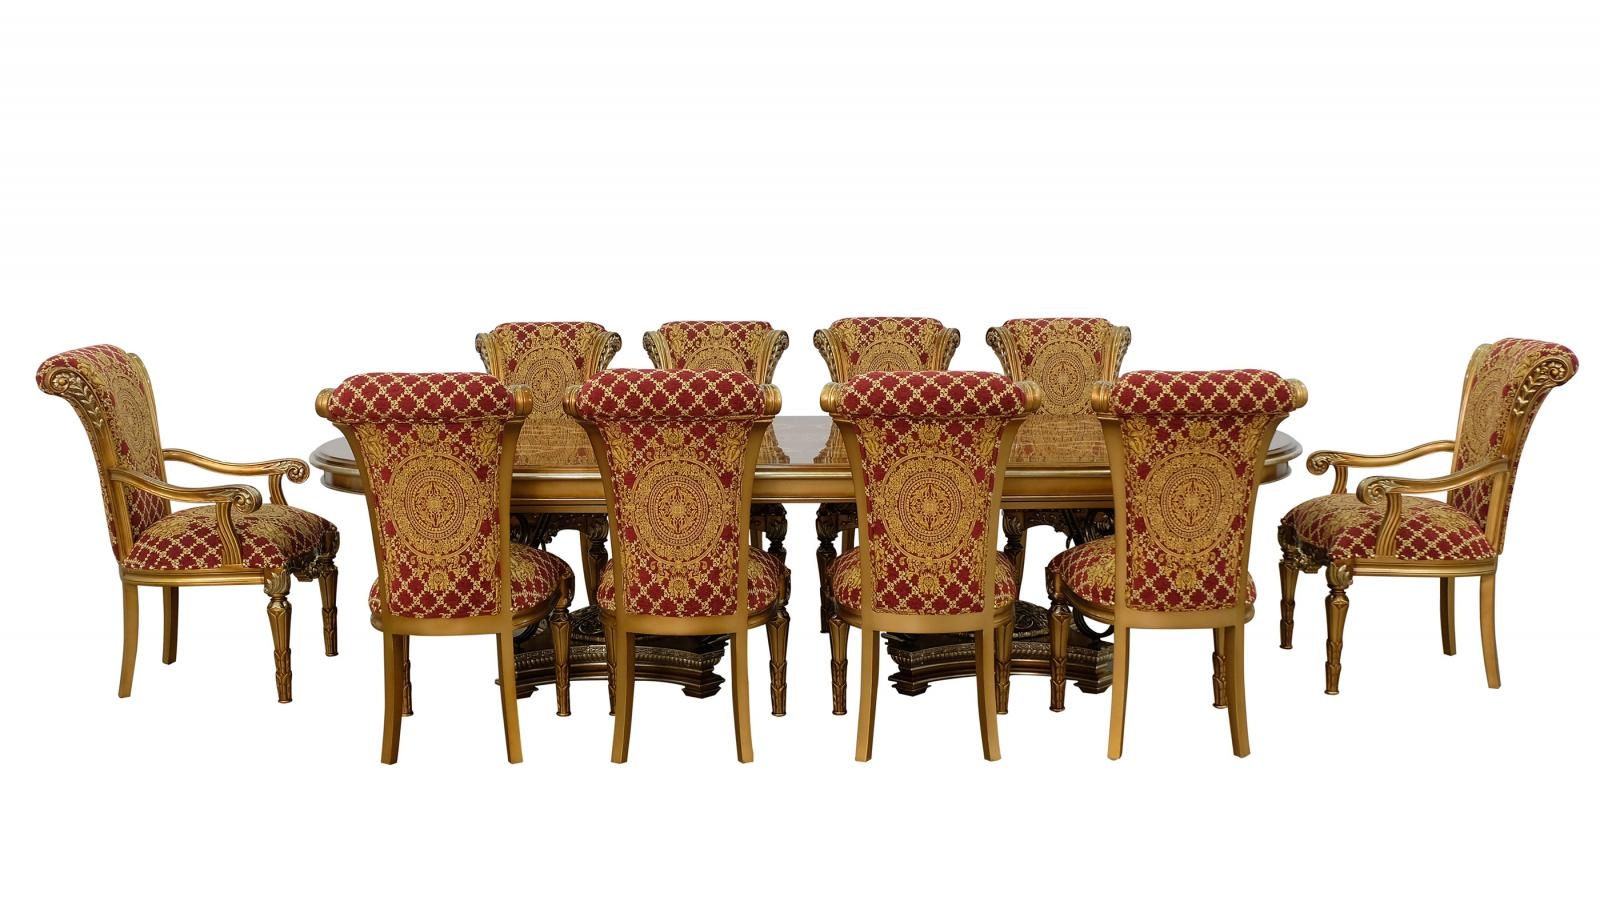 Classic, Traditional Bronze, Gold, Red, Ebony Fabric and Wood, Solid Hardwood Dining Table Set 11 pcs VALENTINA by European Furniture